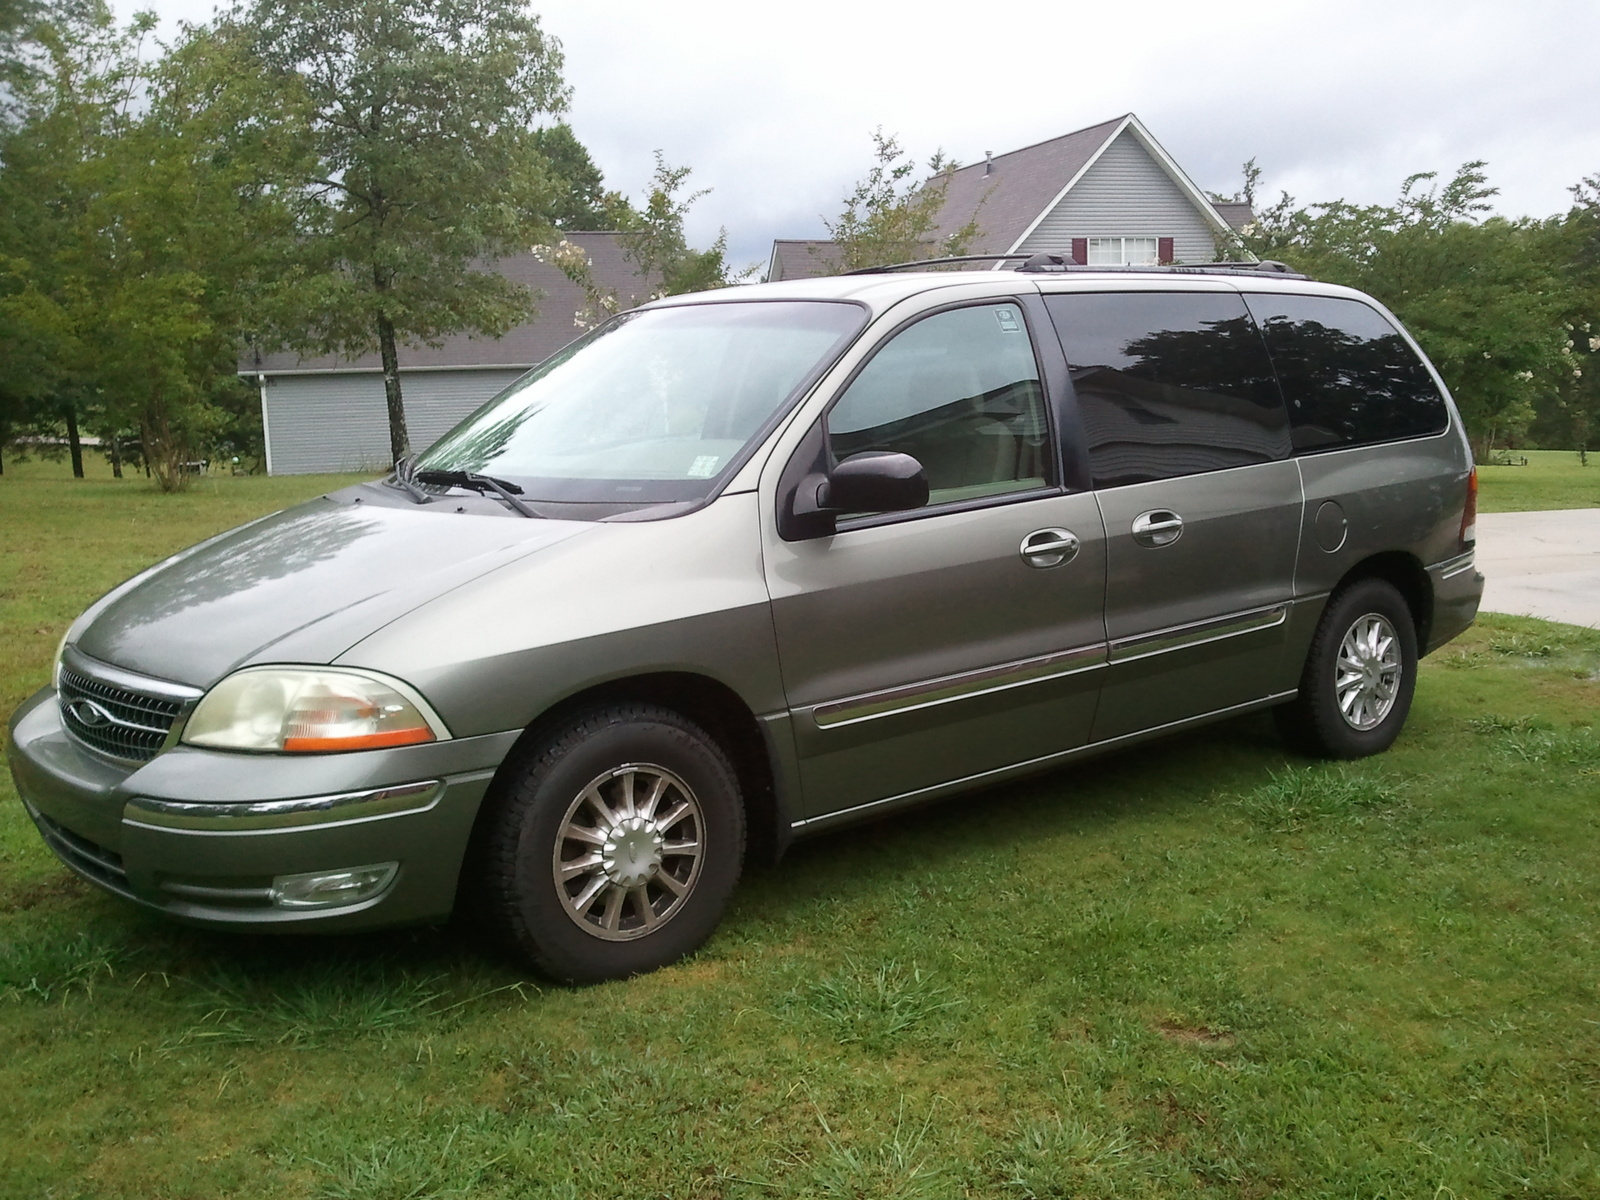 1999 Ford Windstar Fuse Box additionally 2000 Accord Fuse Box also Mazda B2300 Fuse Diagram in addition 2002 Windstar Fuse Box as well Air Conditioner Honda Cr V Problems. on 2000 winstar a c engine